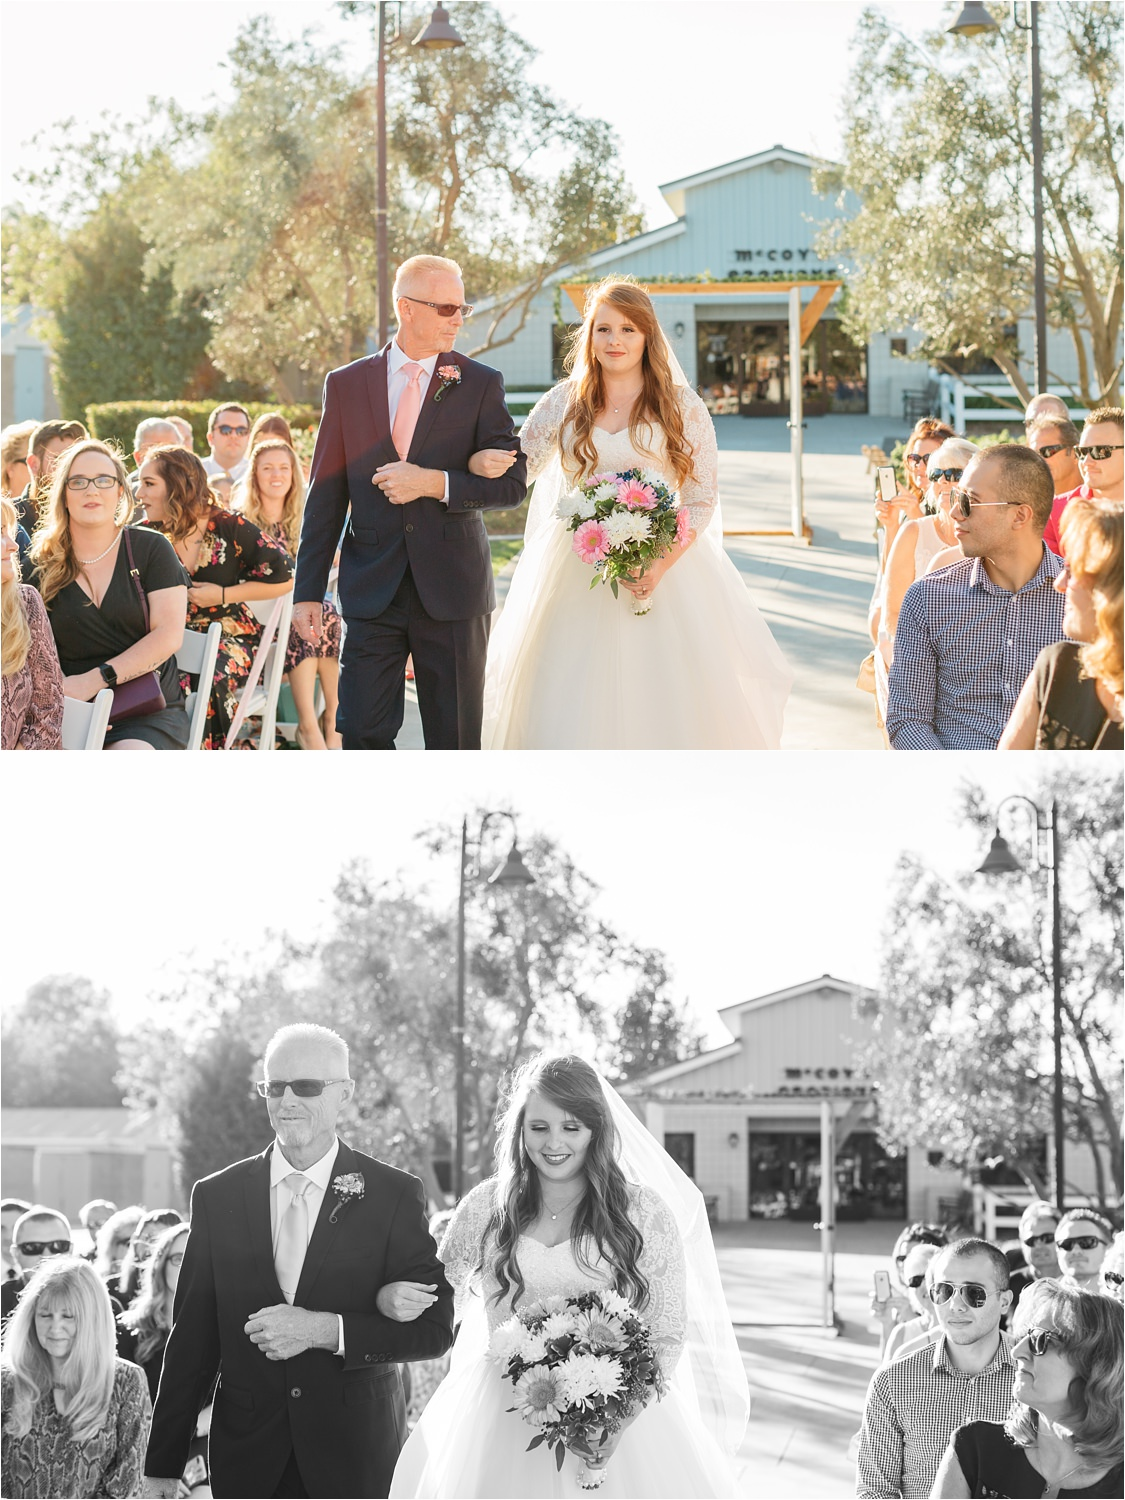 Bride and Groom - McCoy Equestrian Center Wedding Ceremony - Chino Hills, CA Wedding Photographer - https://brittneyhannonphotography.com